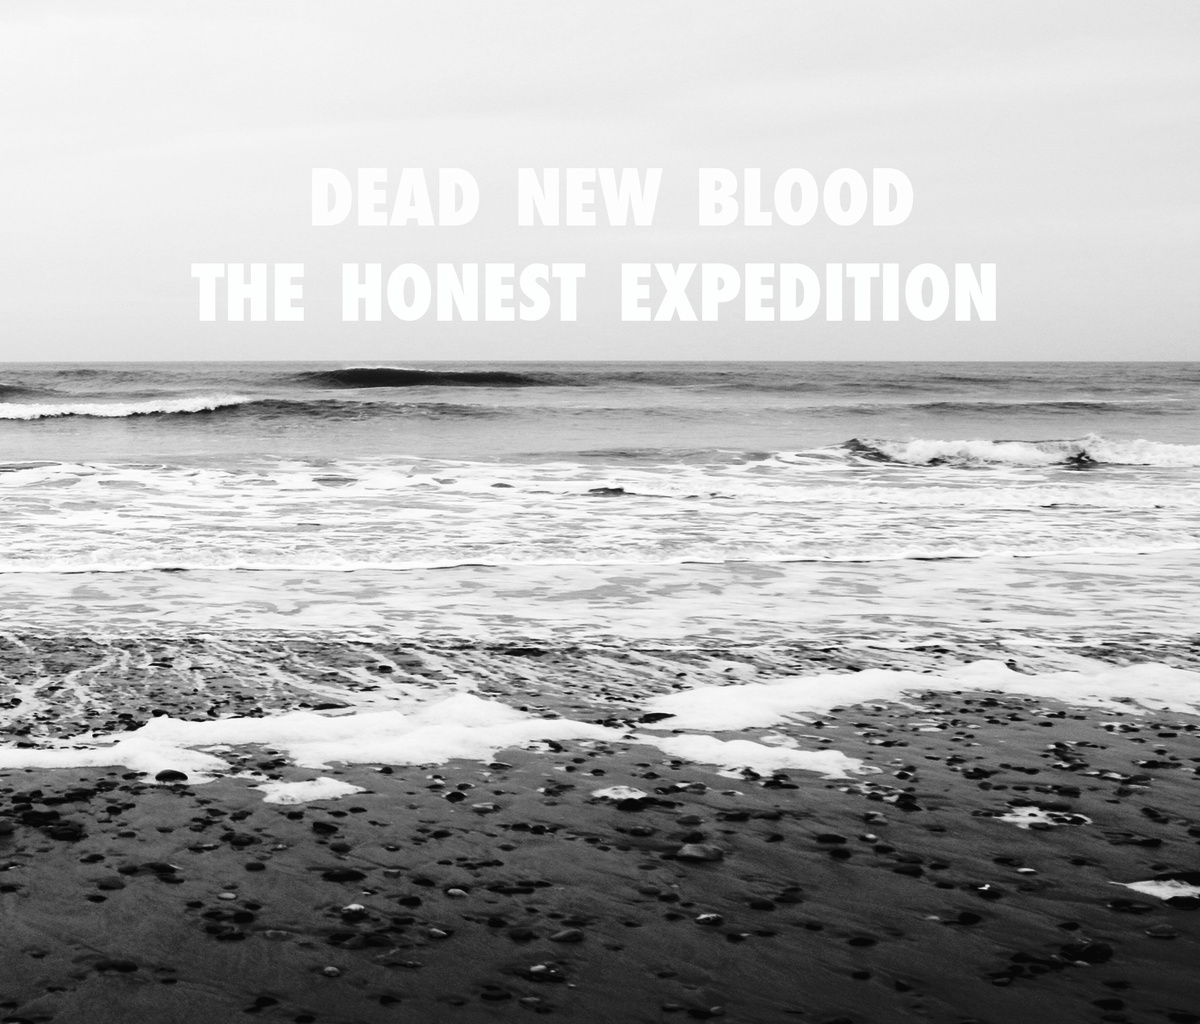 Dead New Blood